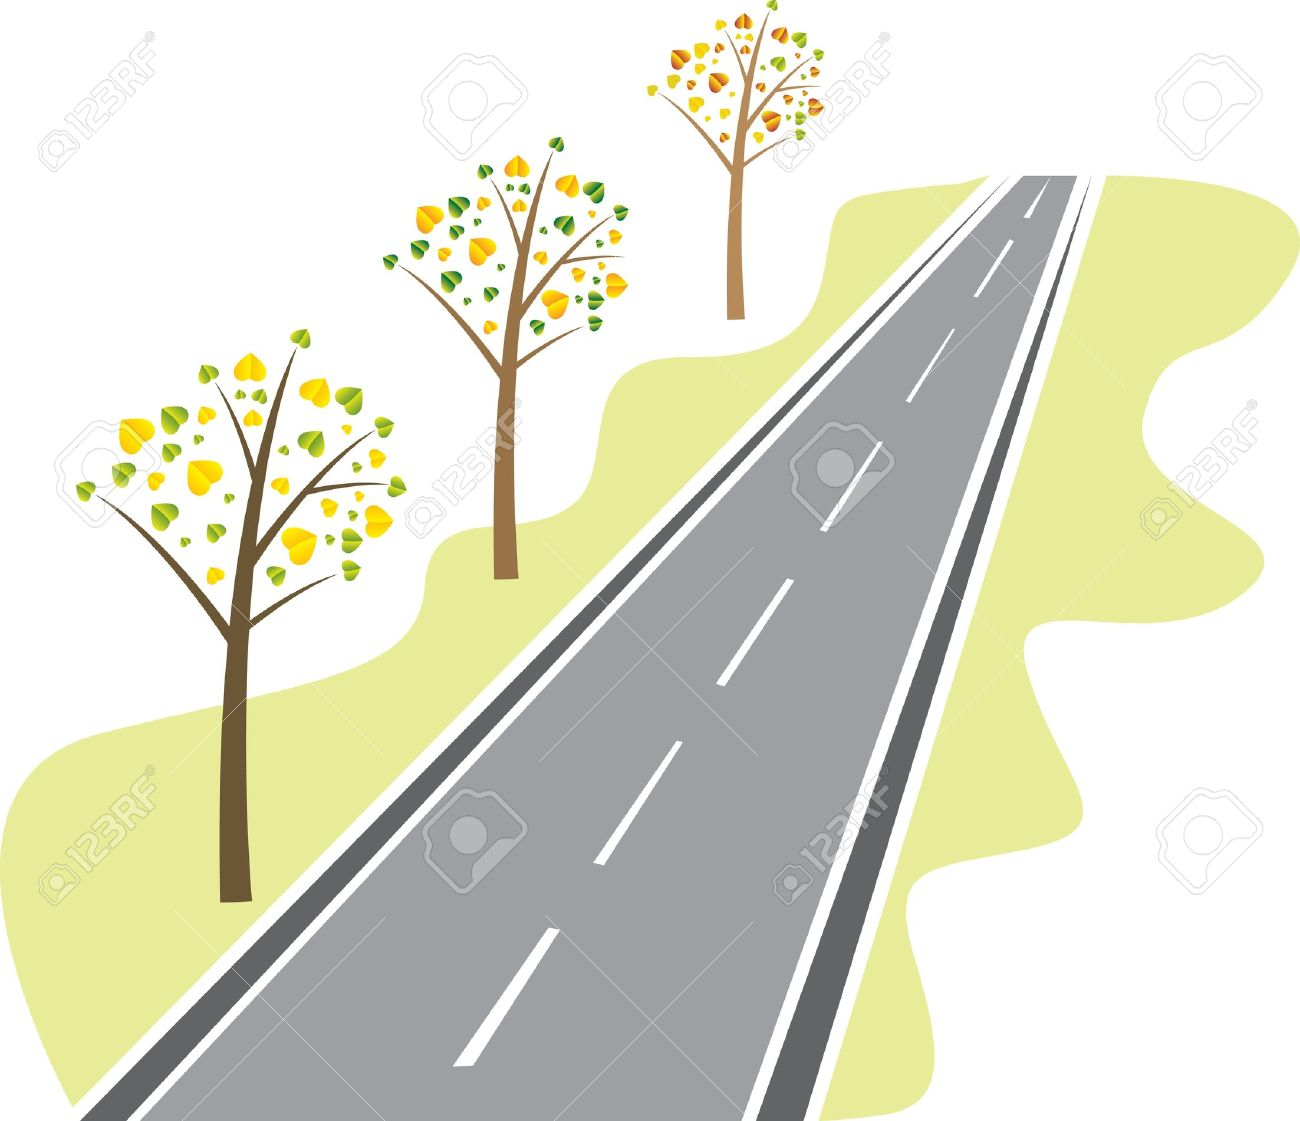 Road Clip Art Powerpoint Ppt | Clipart Panda - Free Clipart Images